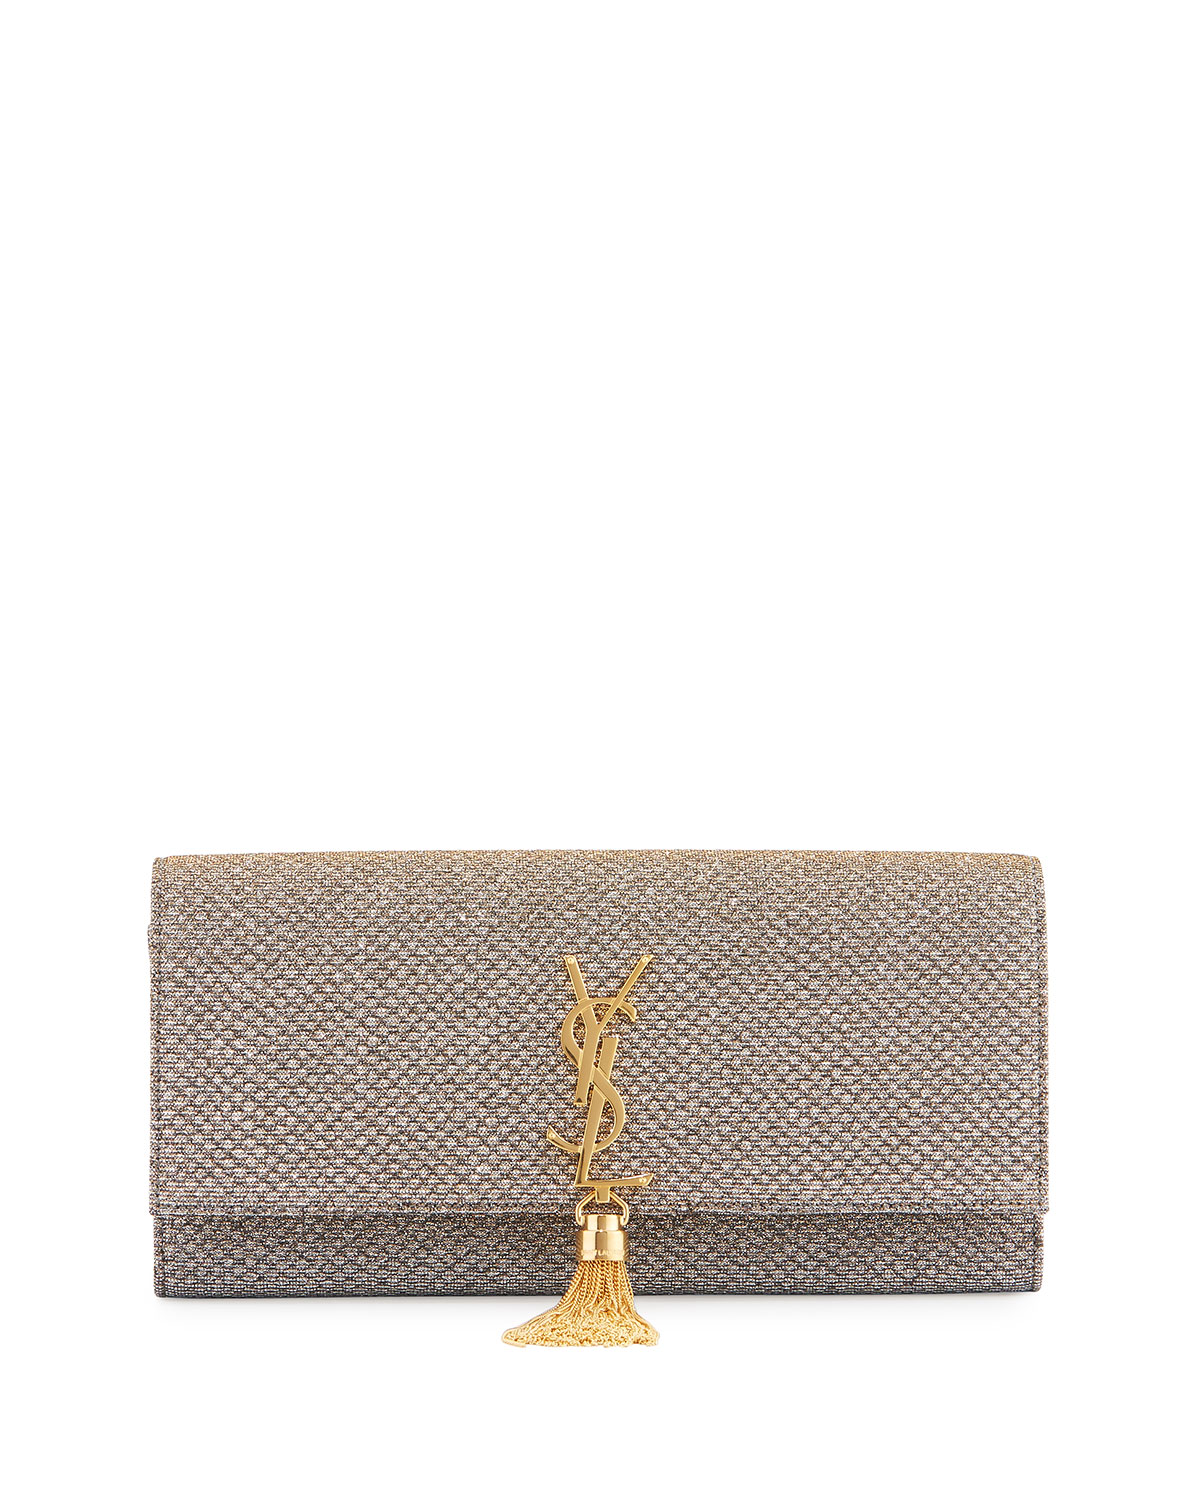 Saint Laurent Kate Monogram Tassel Clutch Bag c469c5c1c0bb6